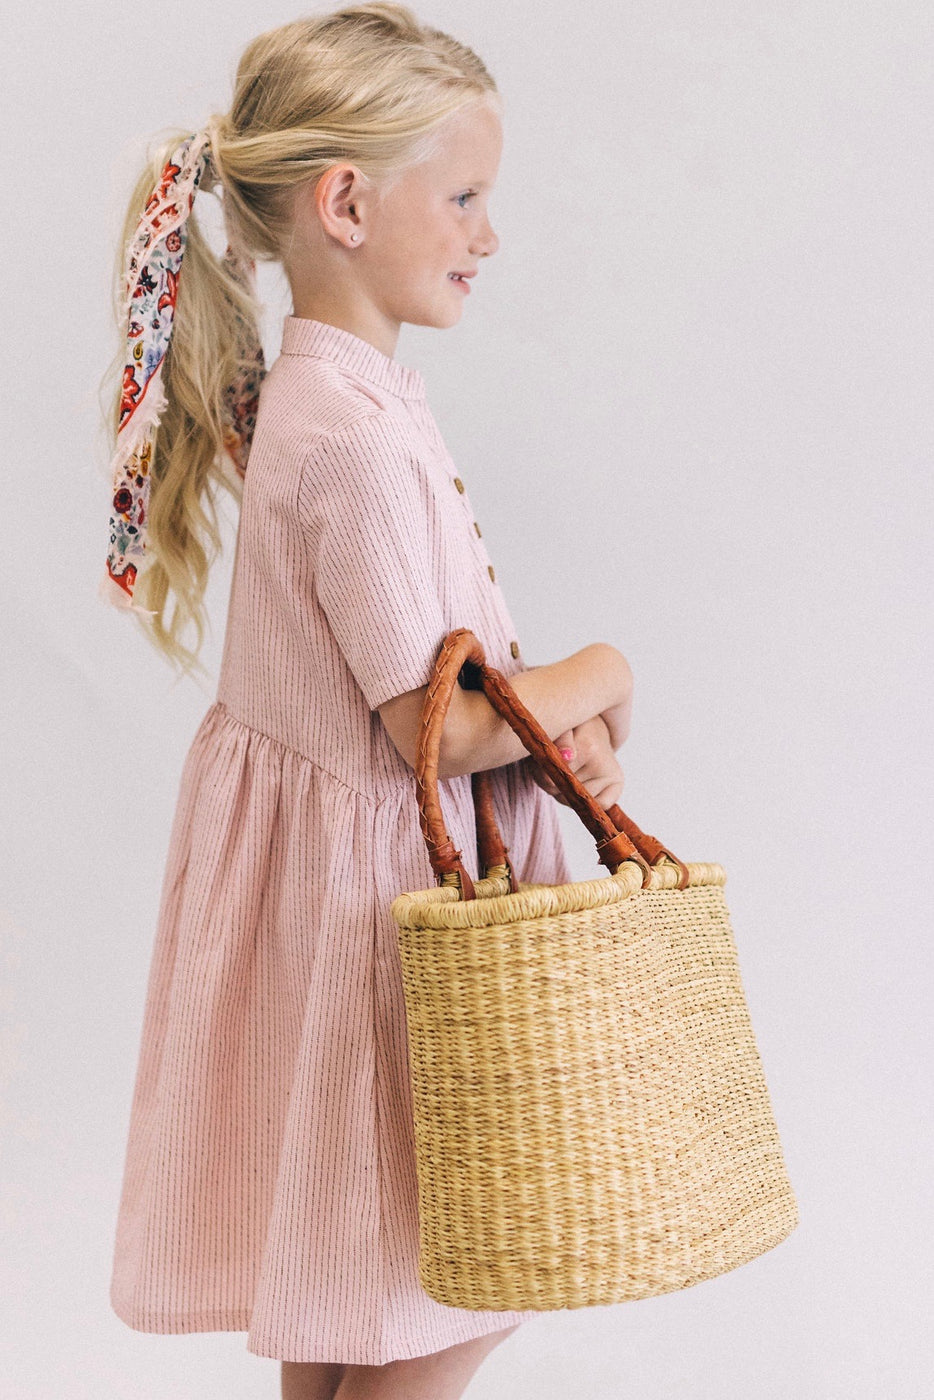 Mini Clements Woven Dress in Primrose | ROOLEE Kids